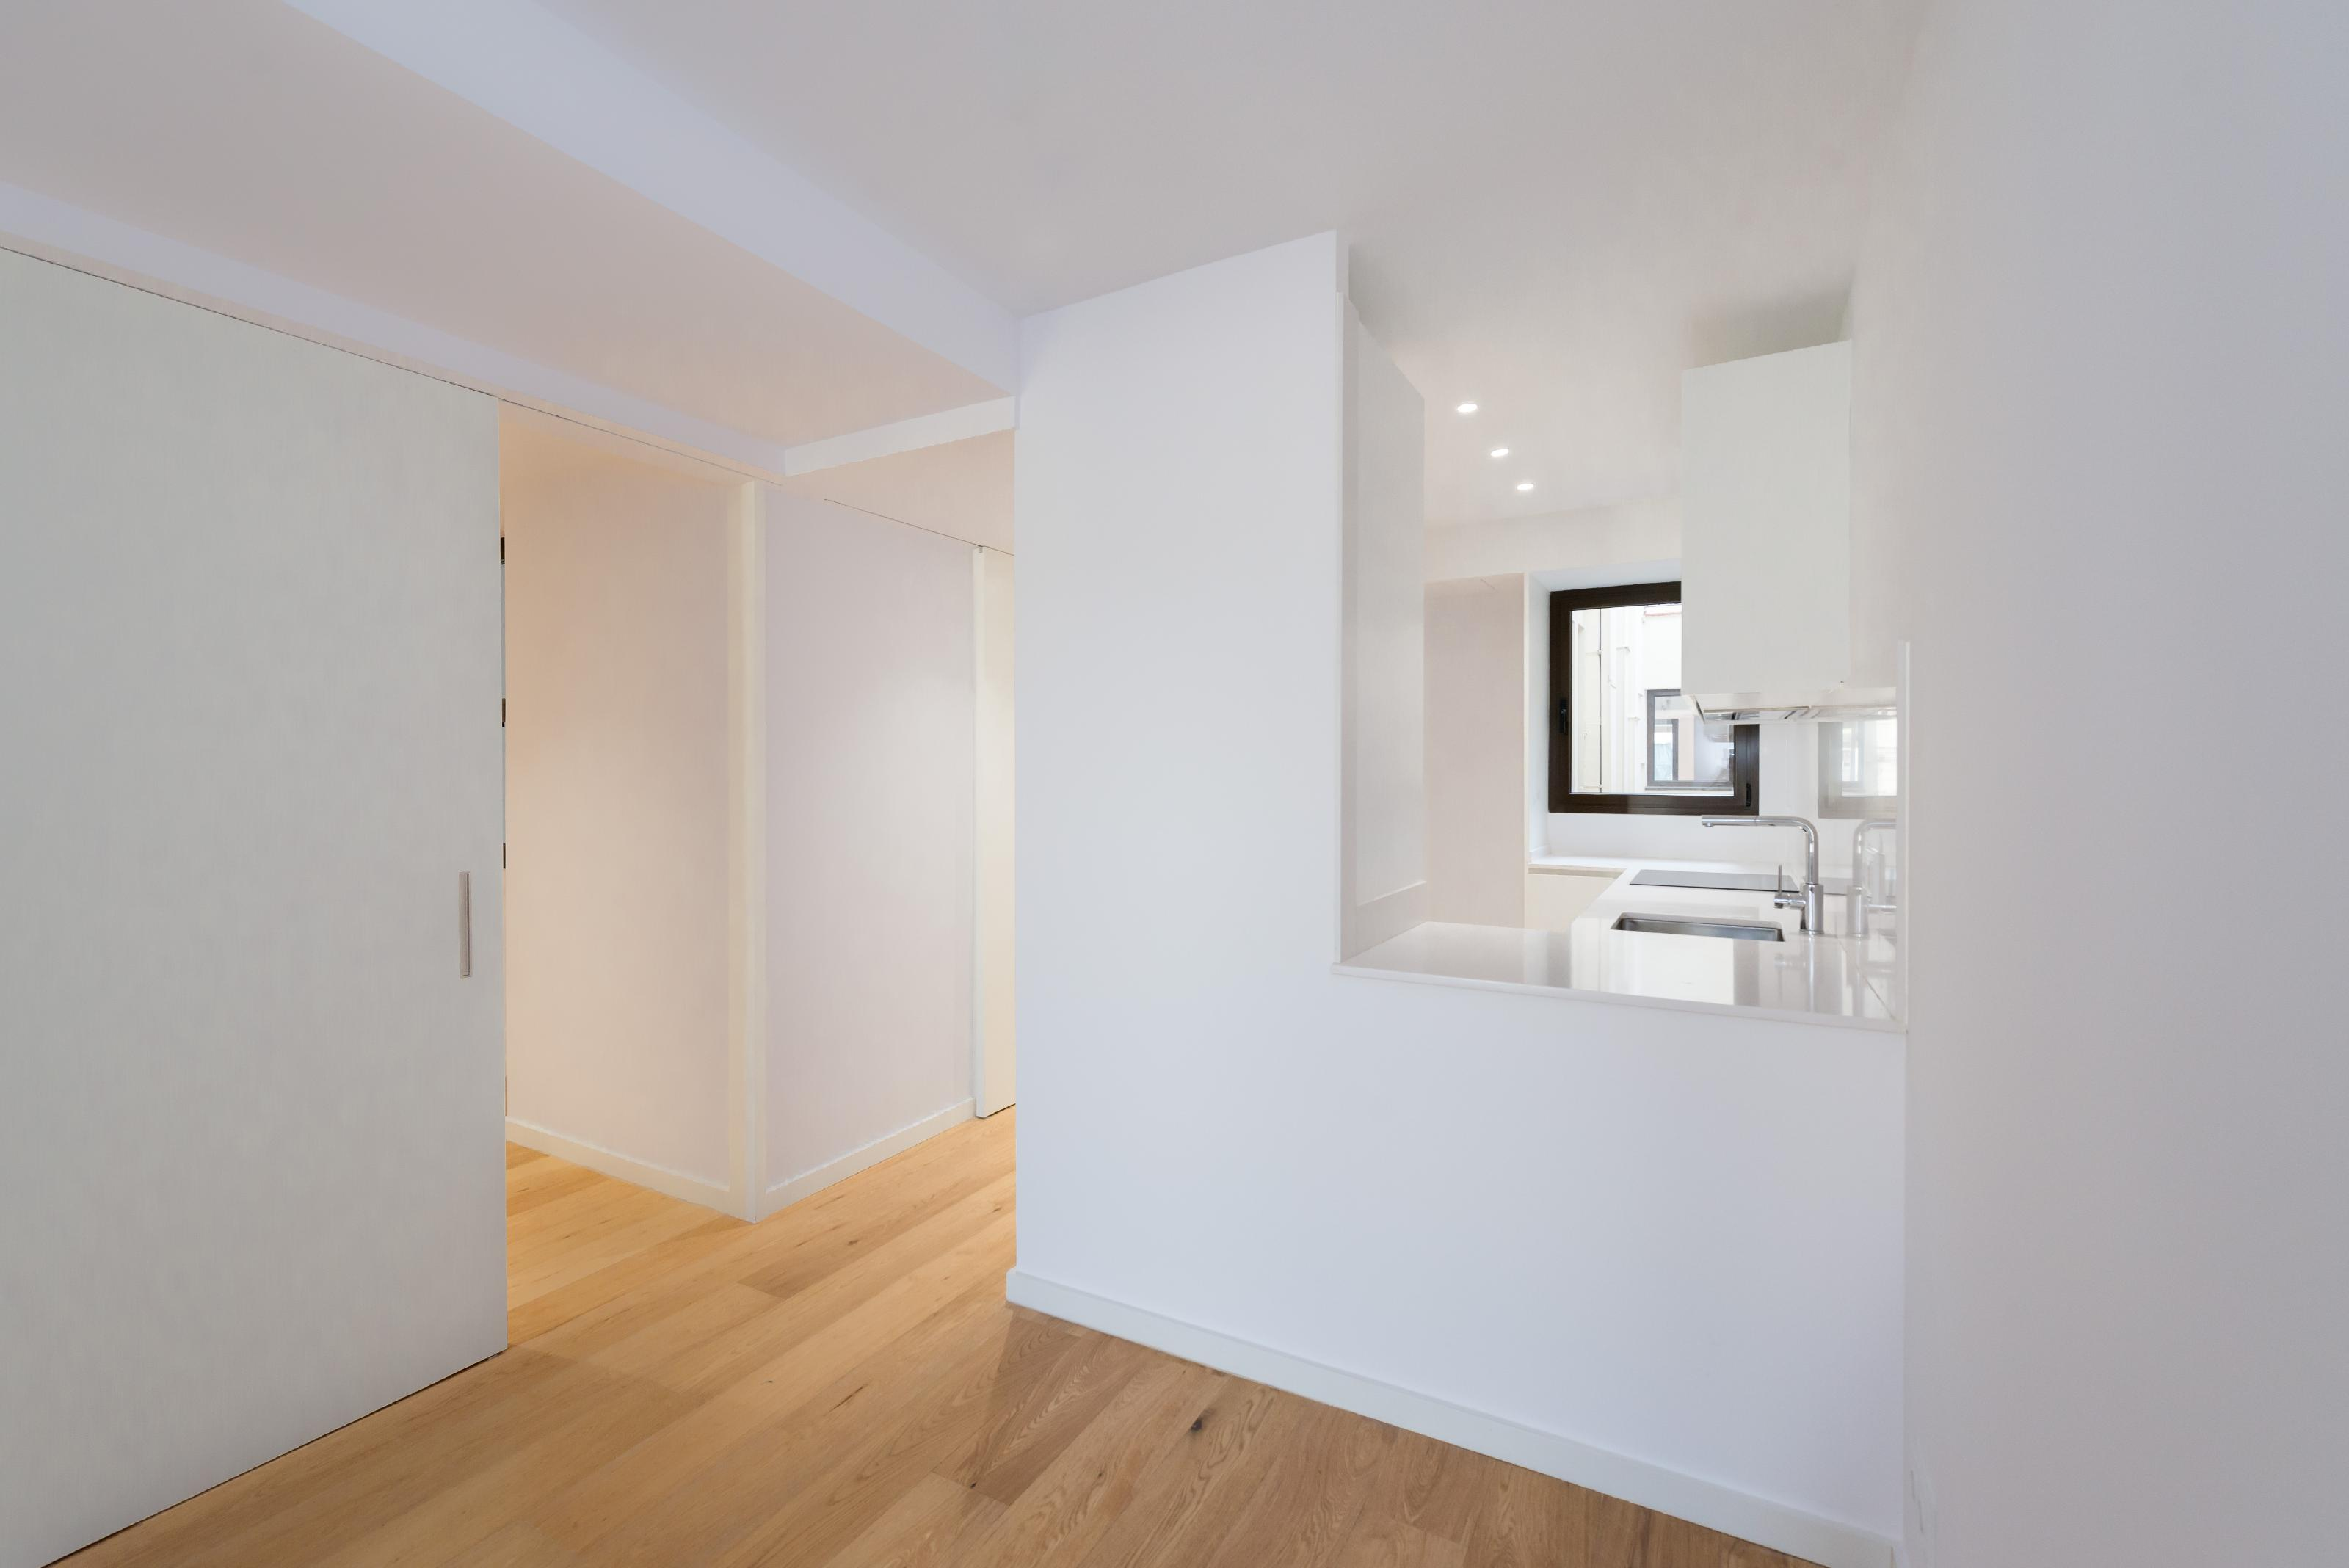 236358 Flat for sale in Eixample, Old Left Eixample 11